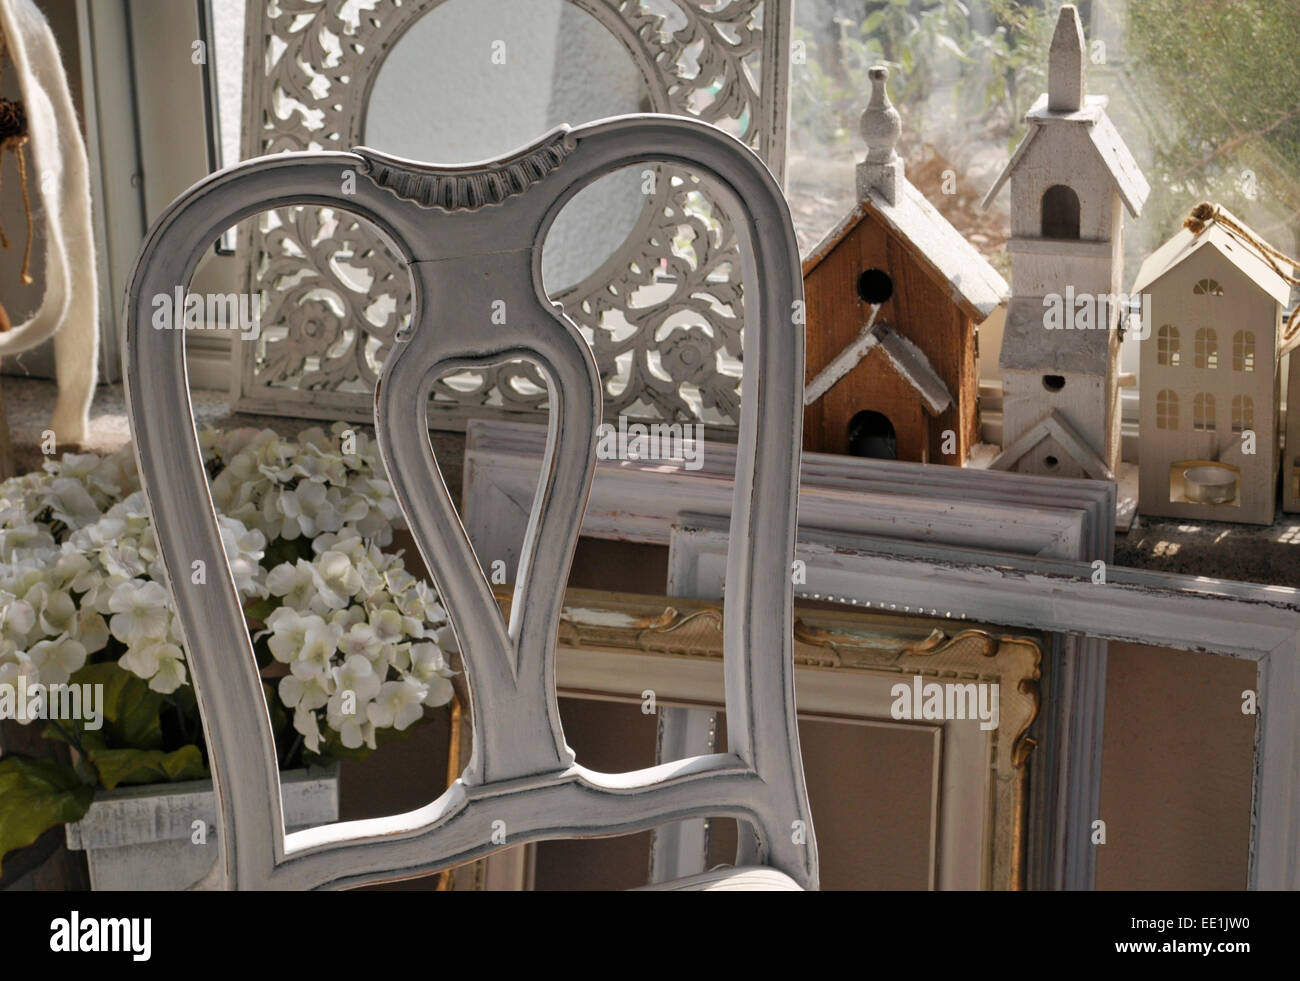 Shabby chic interior - Stock Image